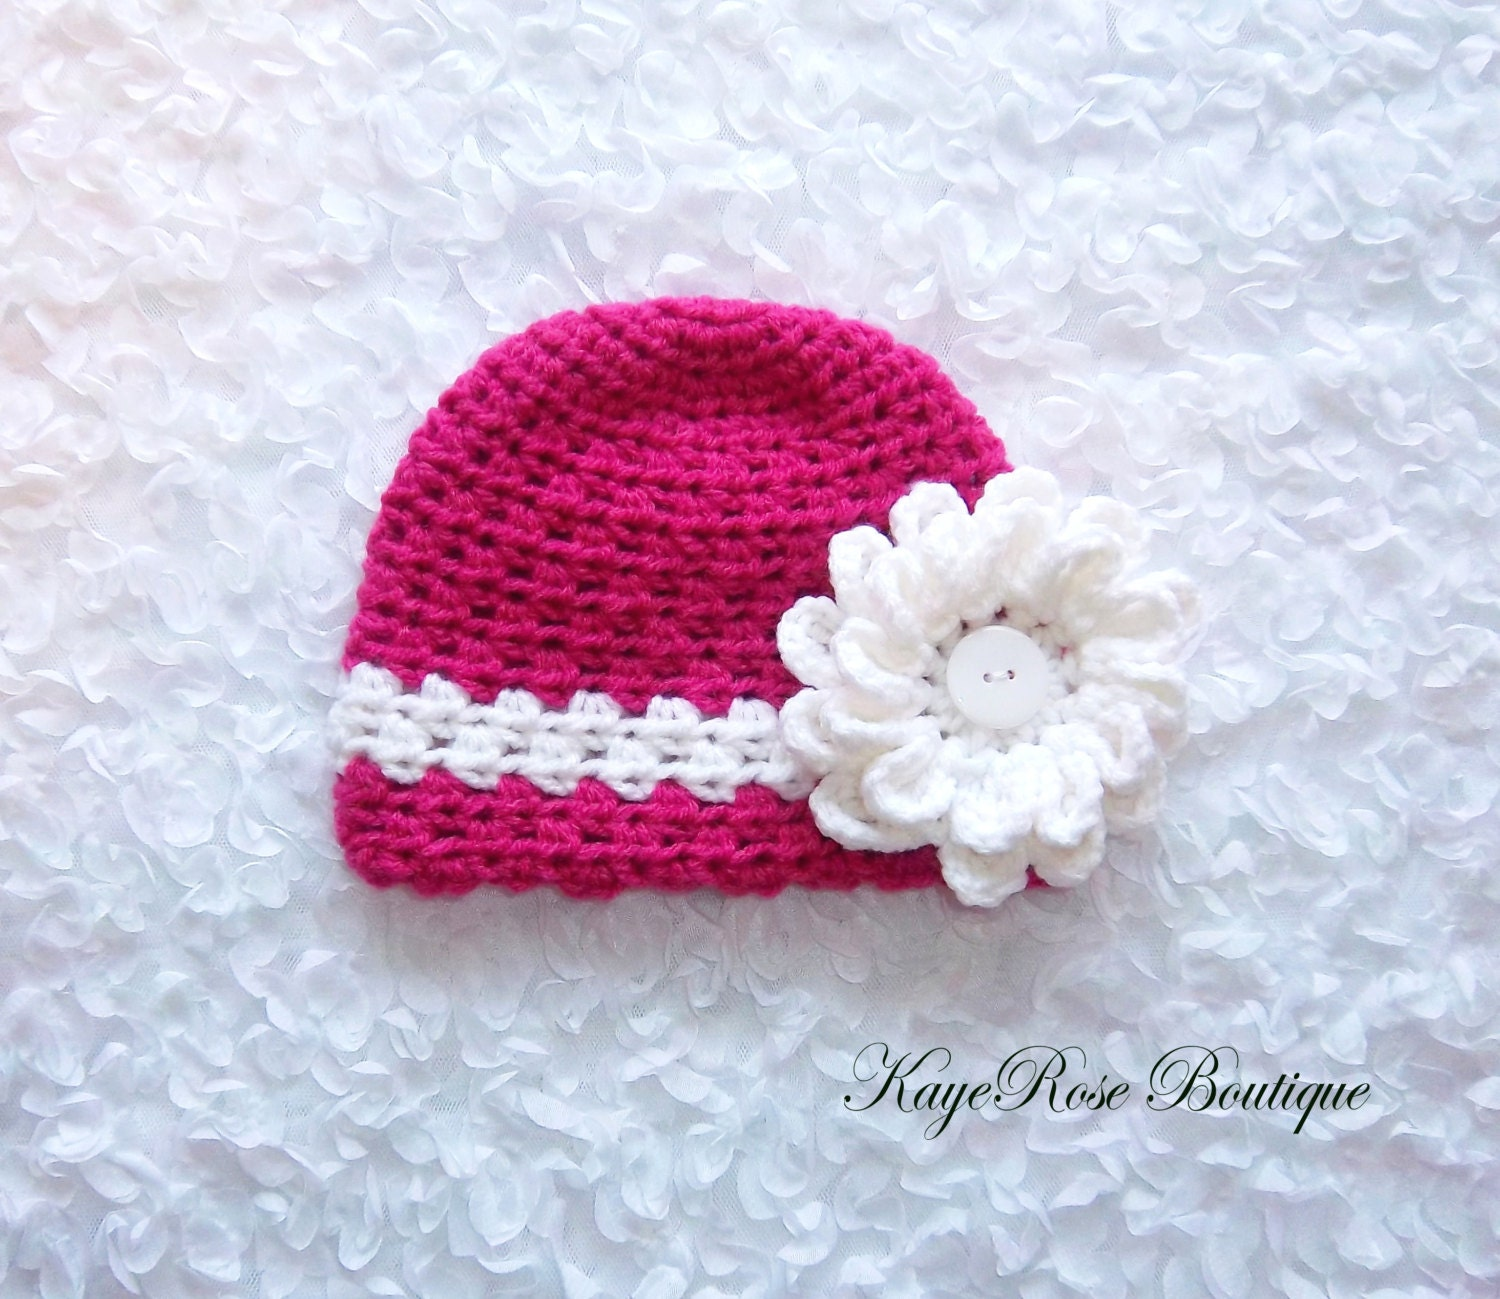 Crochet Hat Pattern For 8 Month Old : Newborn to 3 Month Old Baby Girl Crochet Flower Hat Pink and